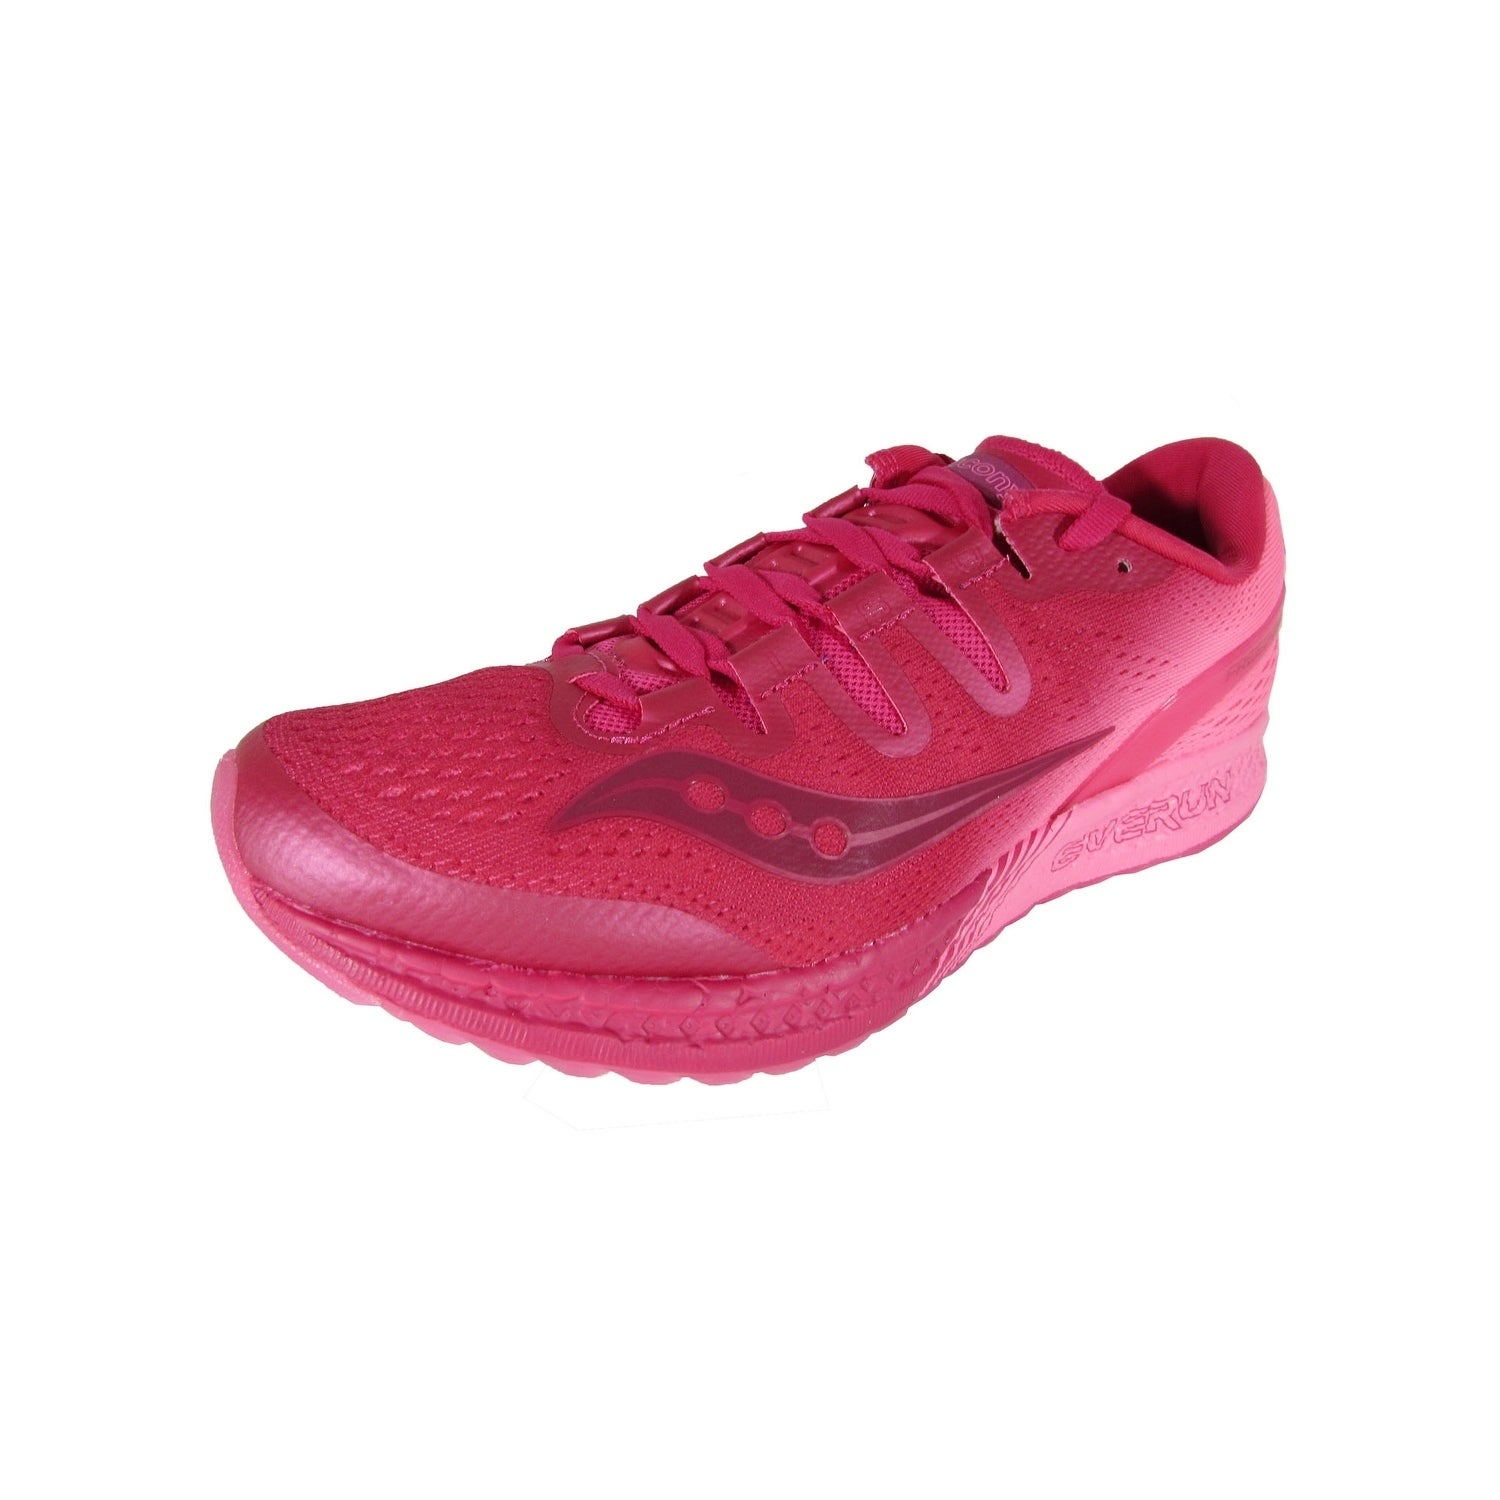 fc1c9e8c19d2 Shop Saucony Womens Freedom ISO Running Sneaker Shoes